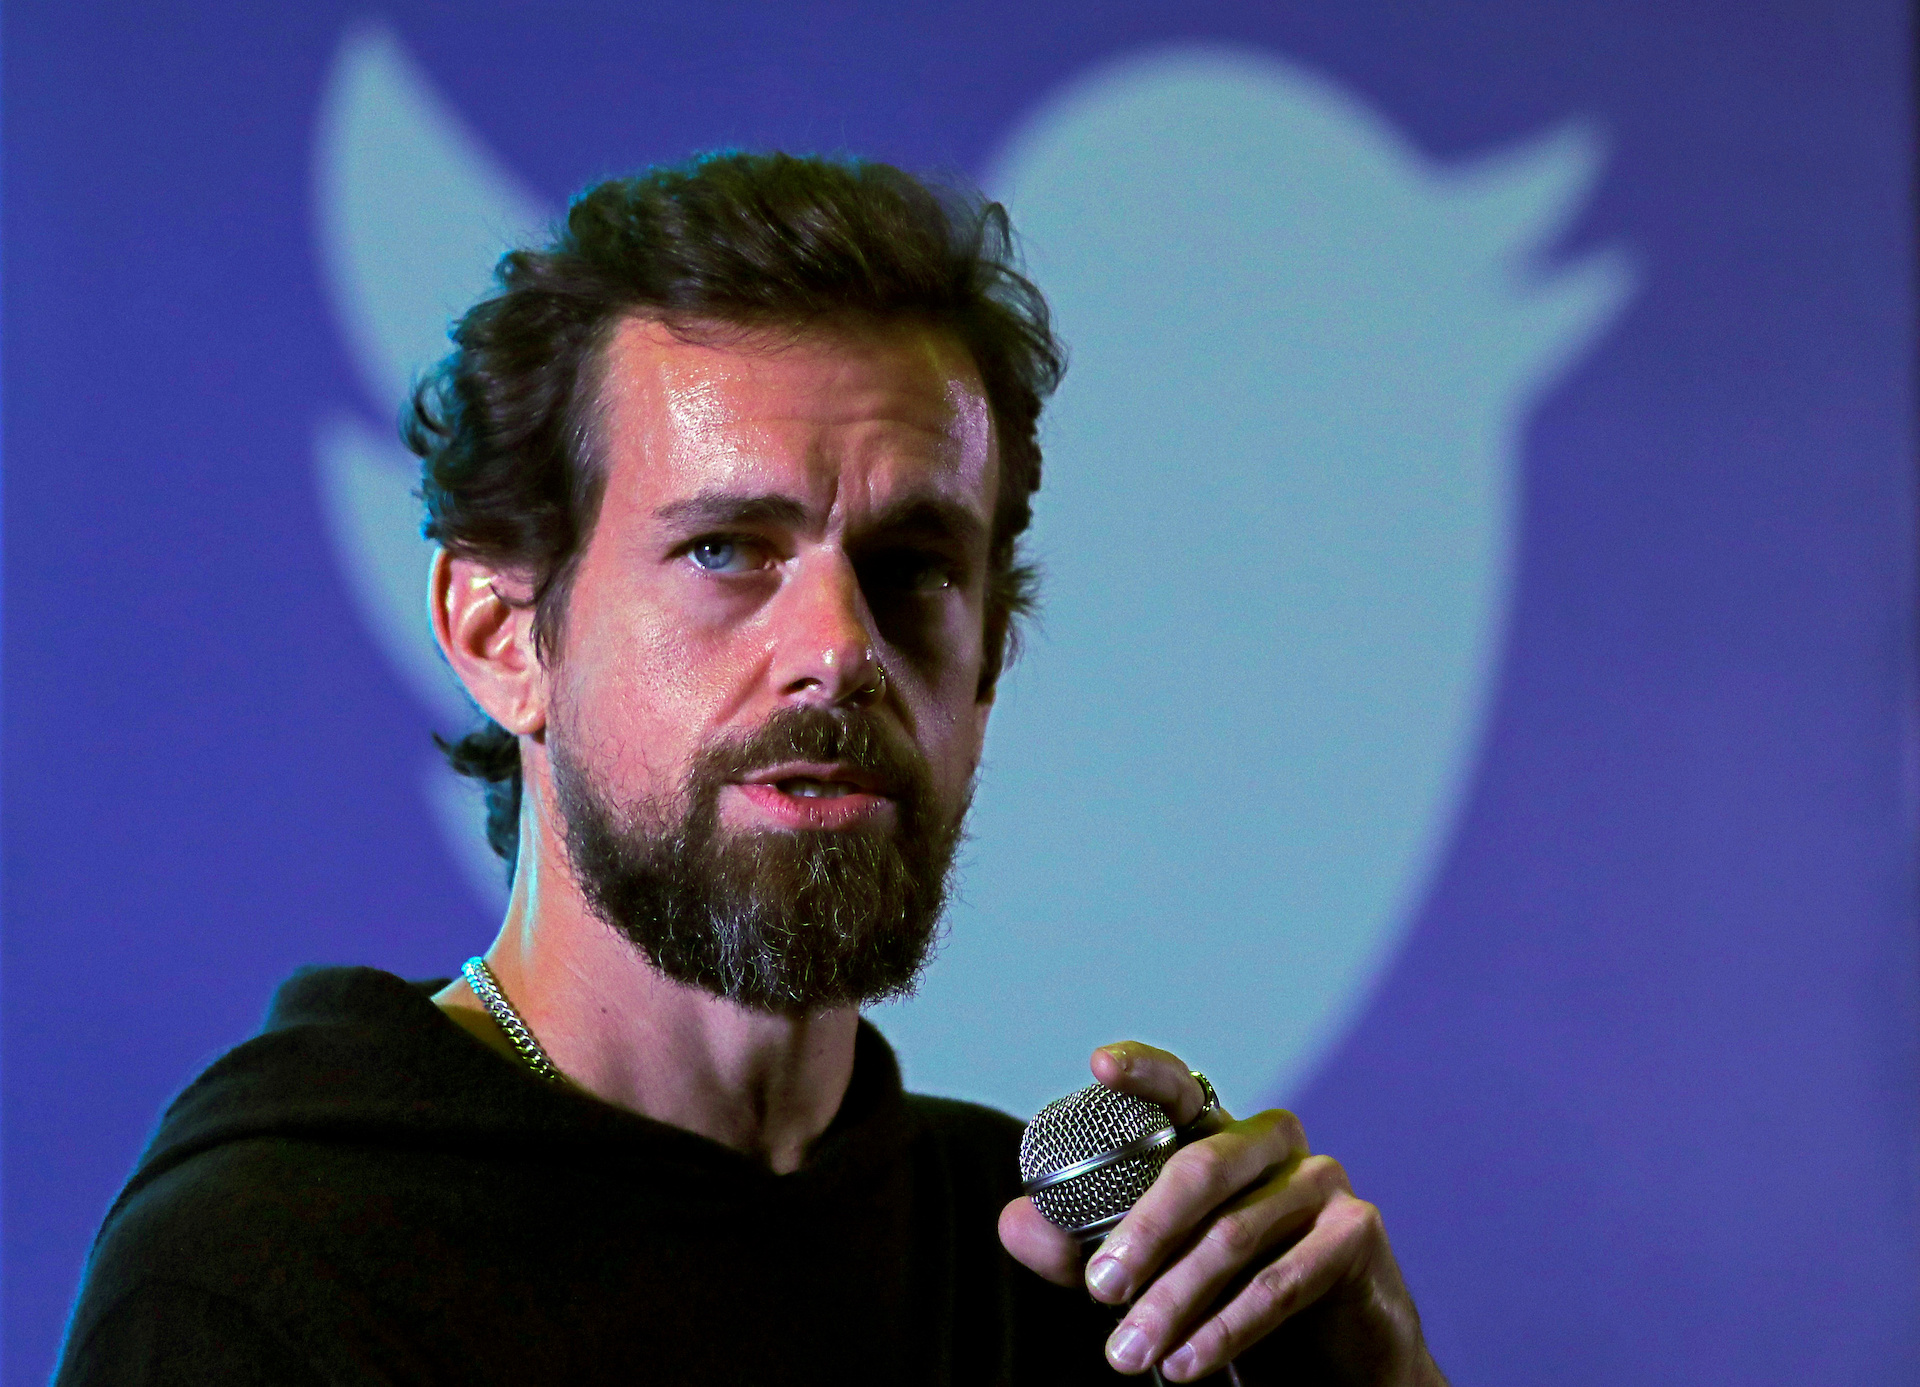 vice.com - David Gilbert - Jack Dorsey went to India to promote Twitter. He started a huge fight instead. - VICE News